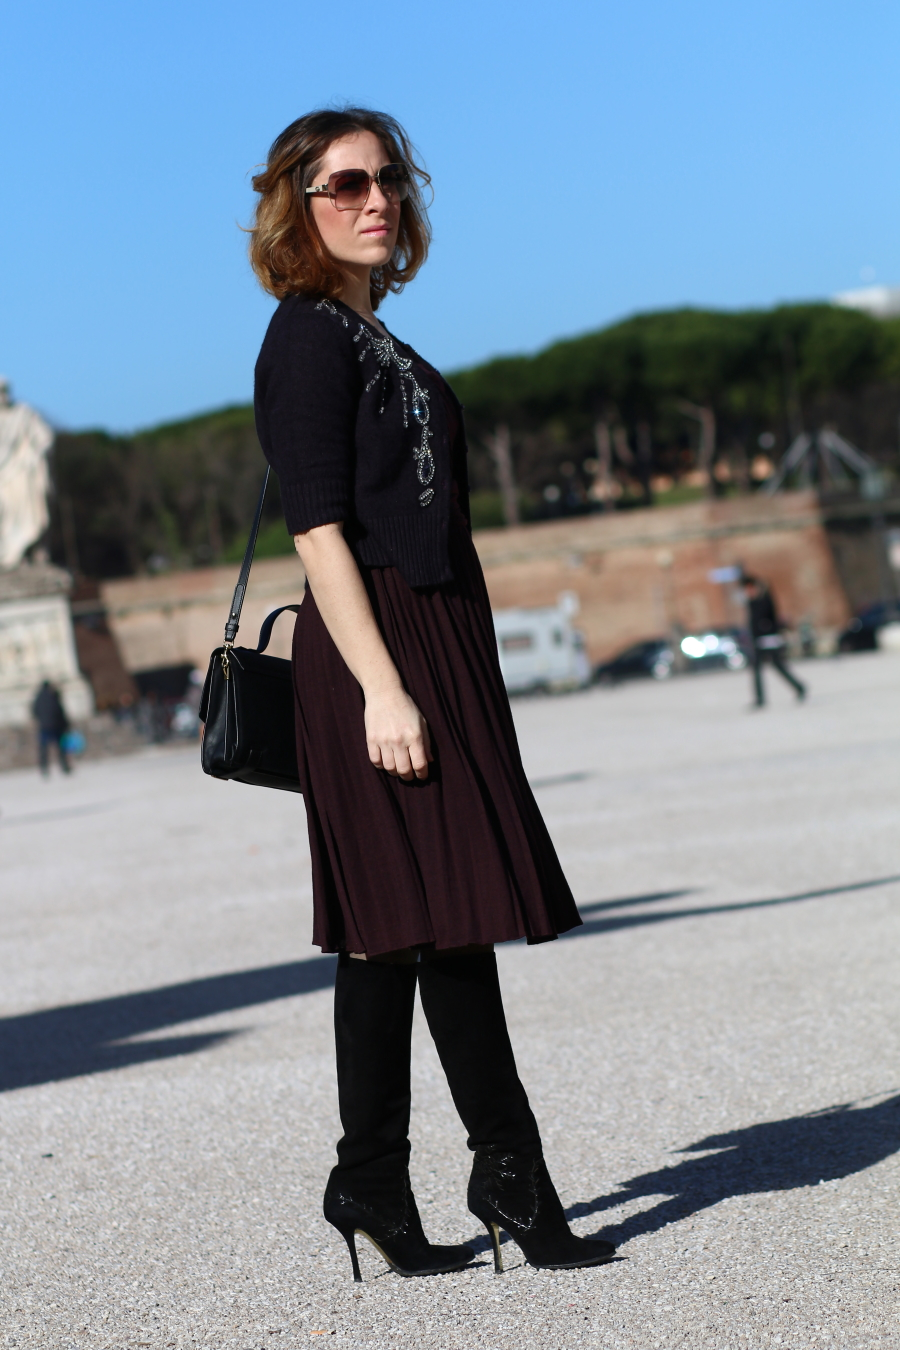 blogger diaries calogero didlove say good-bye by The Italian Glam Dolce Gabbana pleated dress